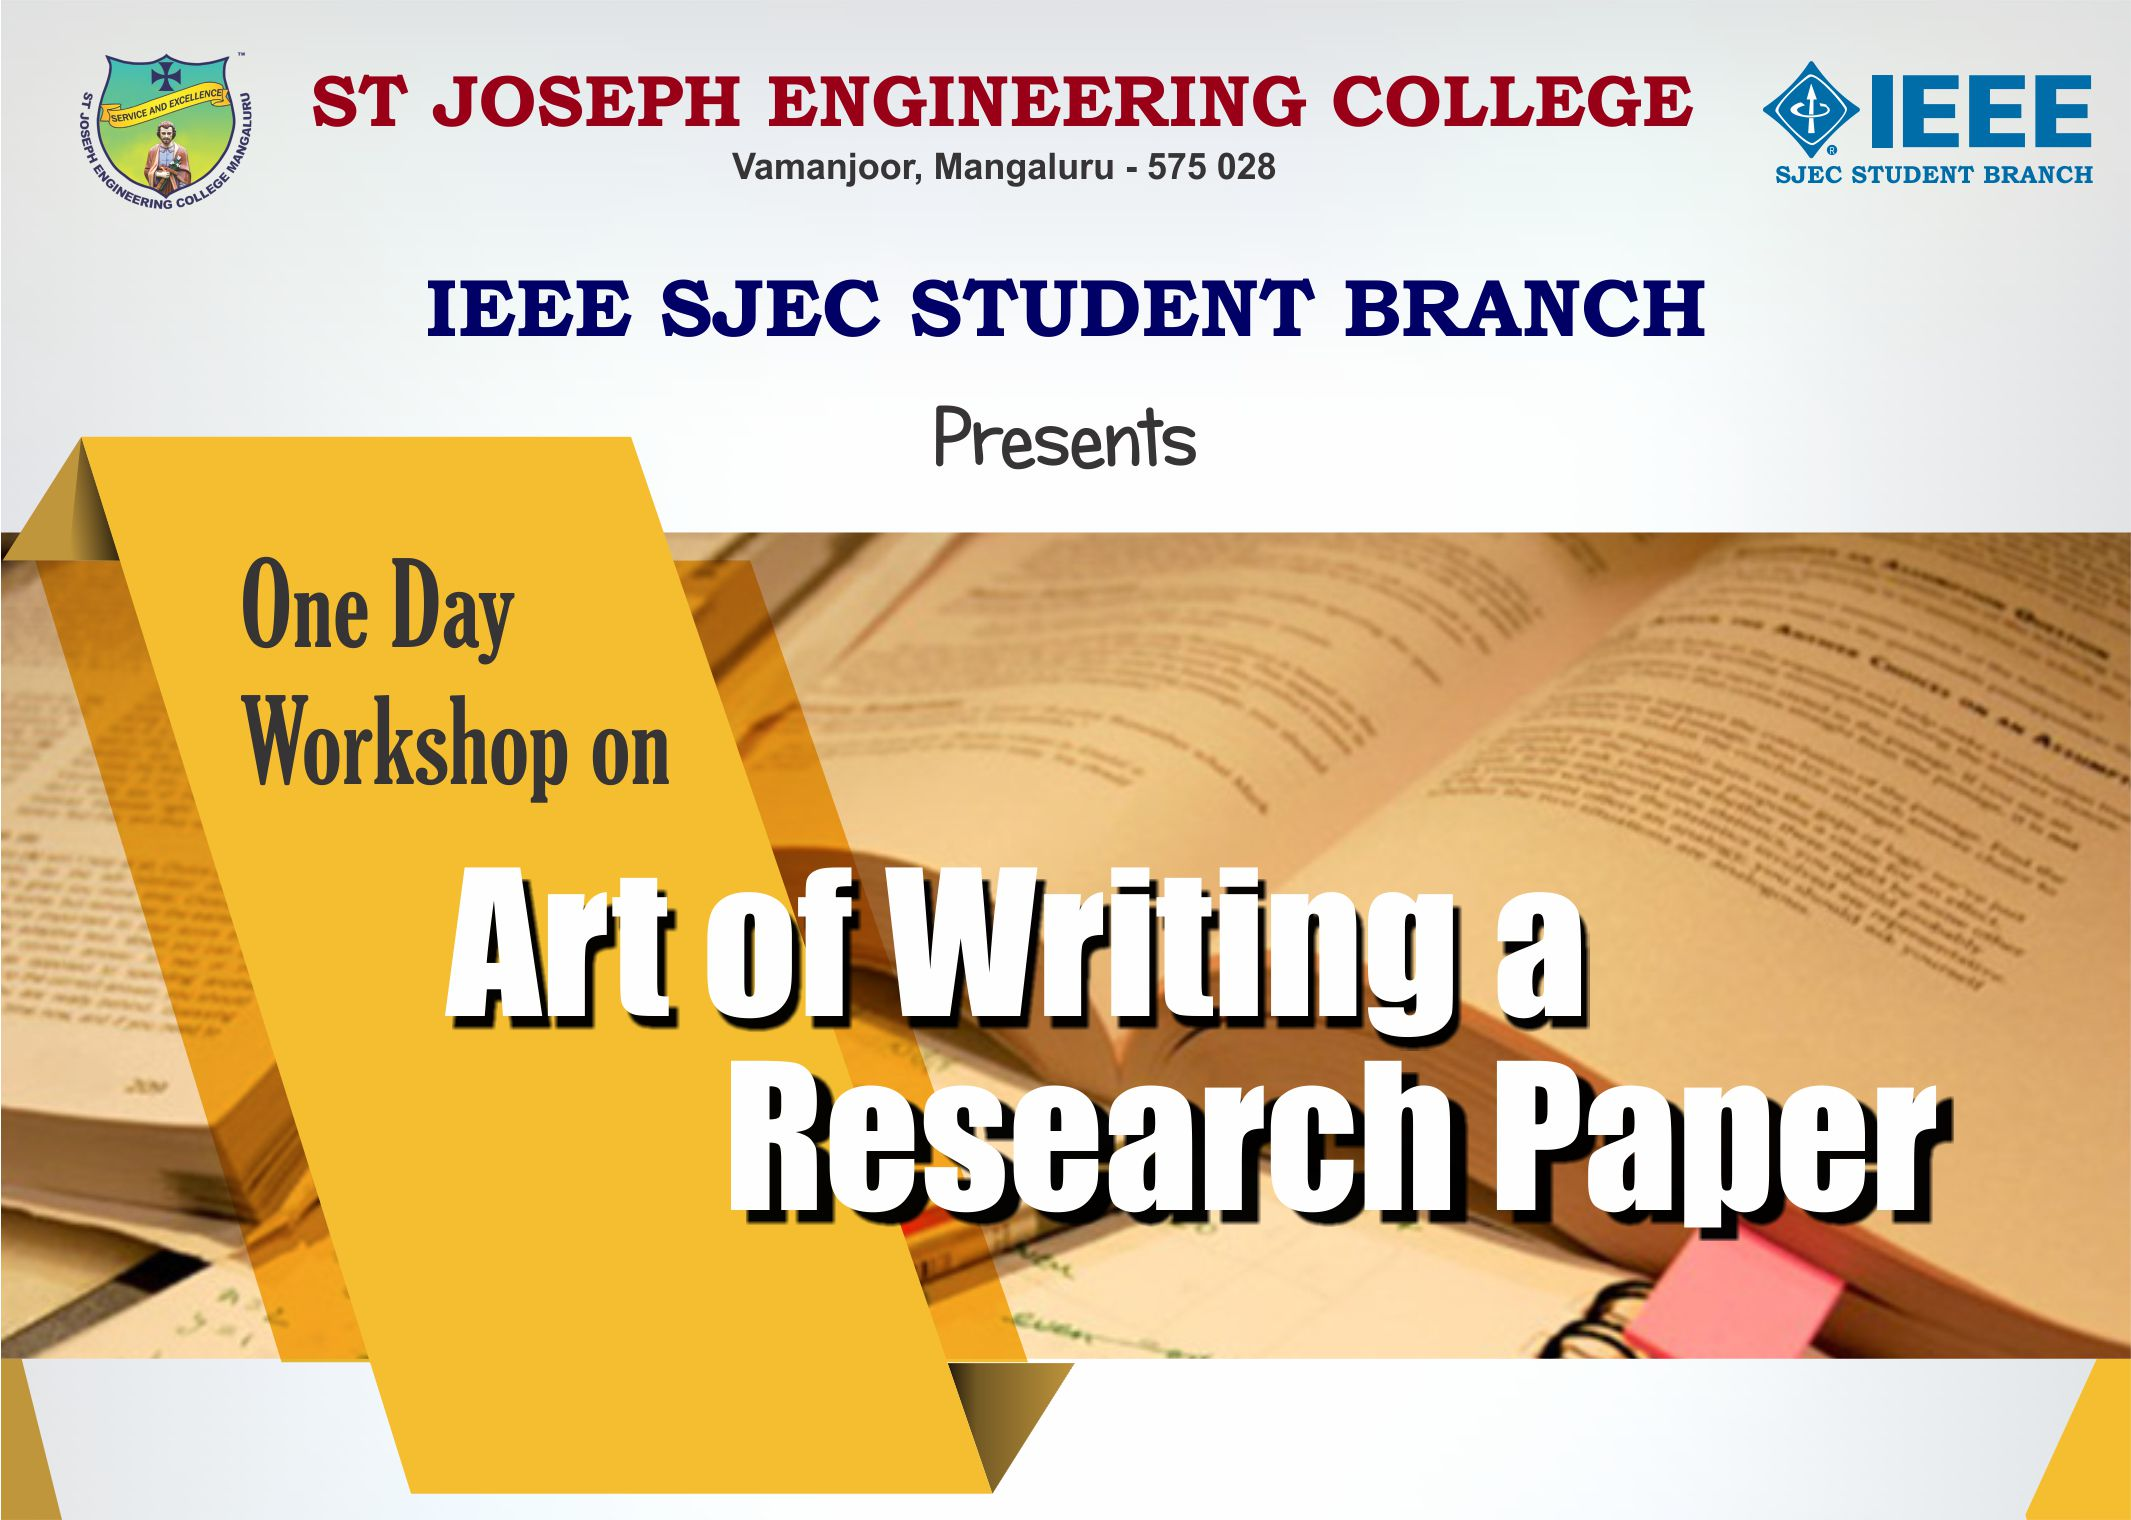 005 Workshop Banner Researchs Writing Fascinating Research Papers Paper Skills Ppt Pdf Tips Full